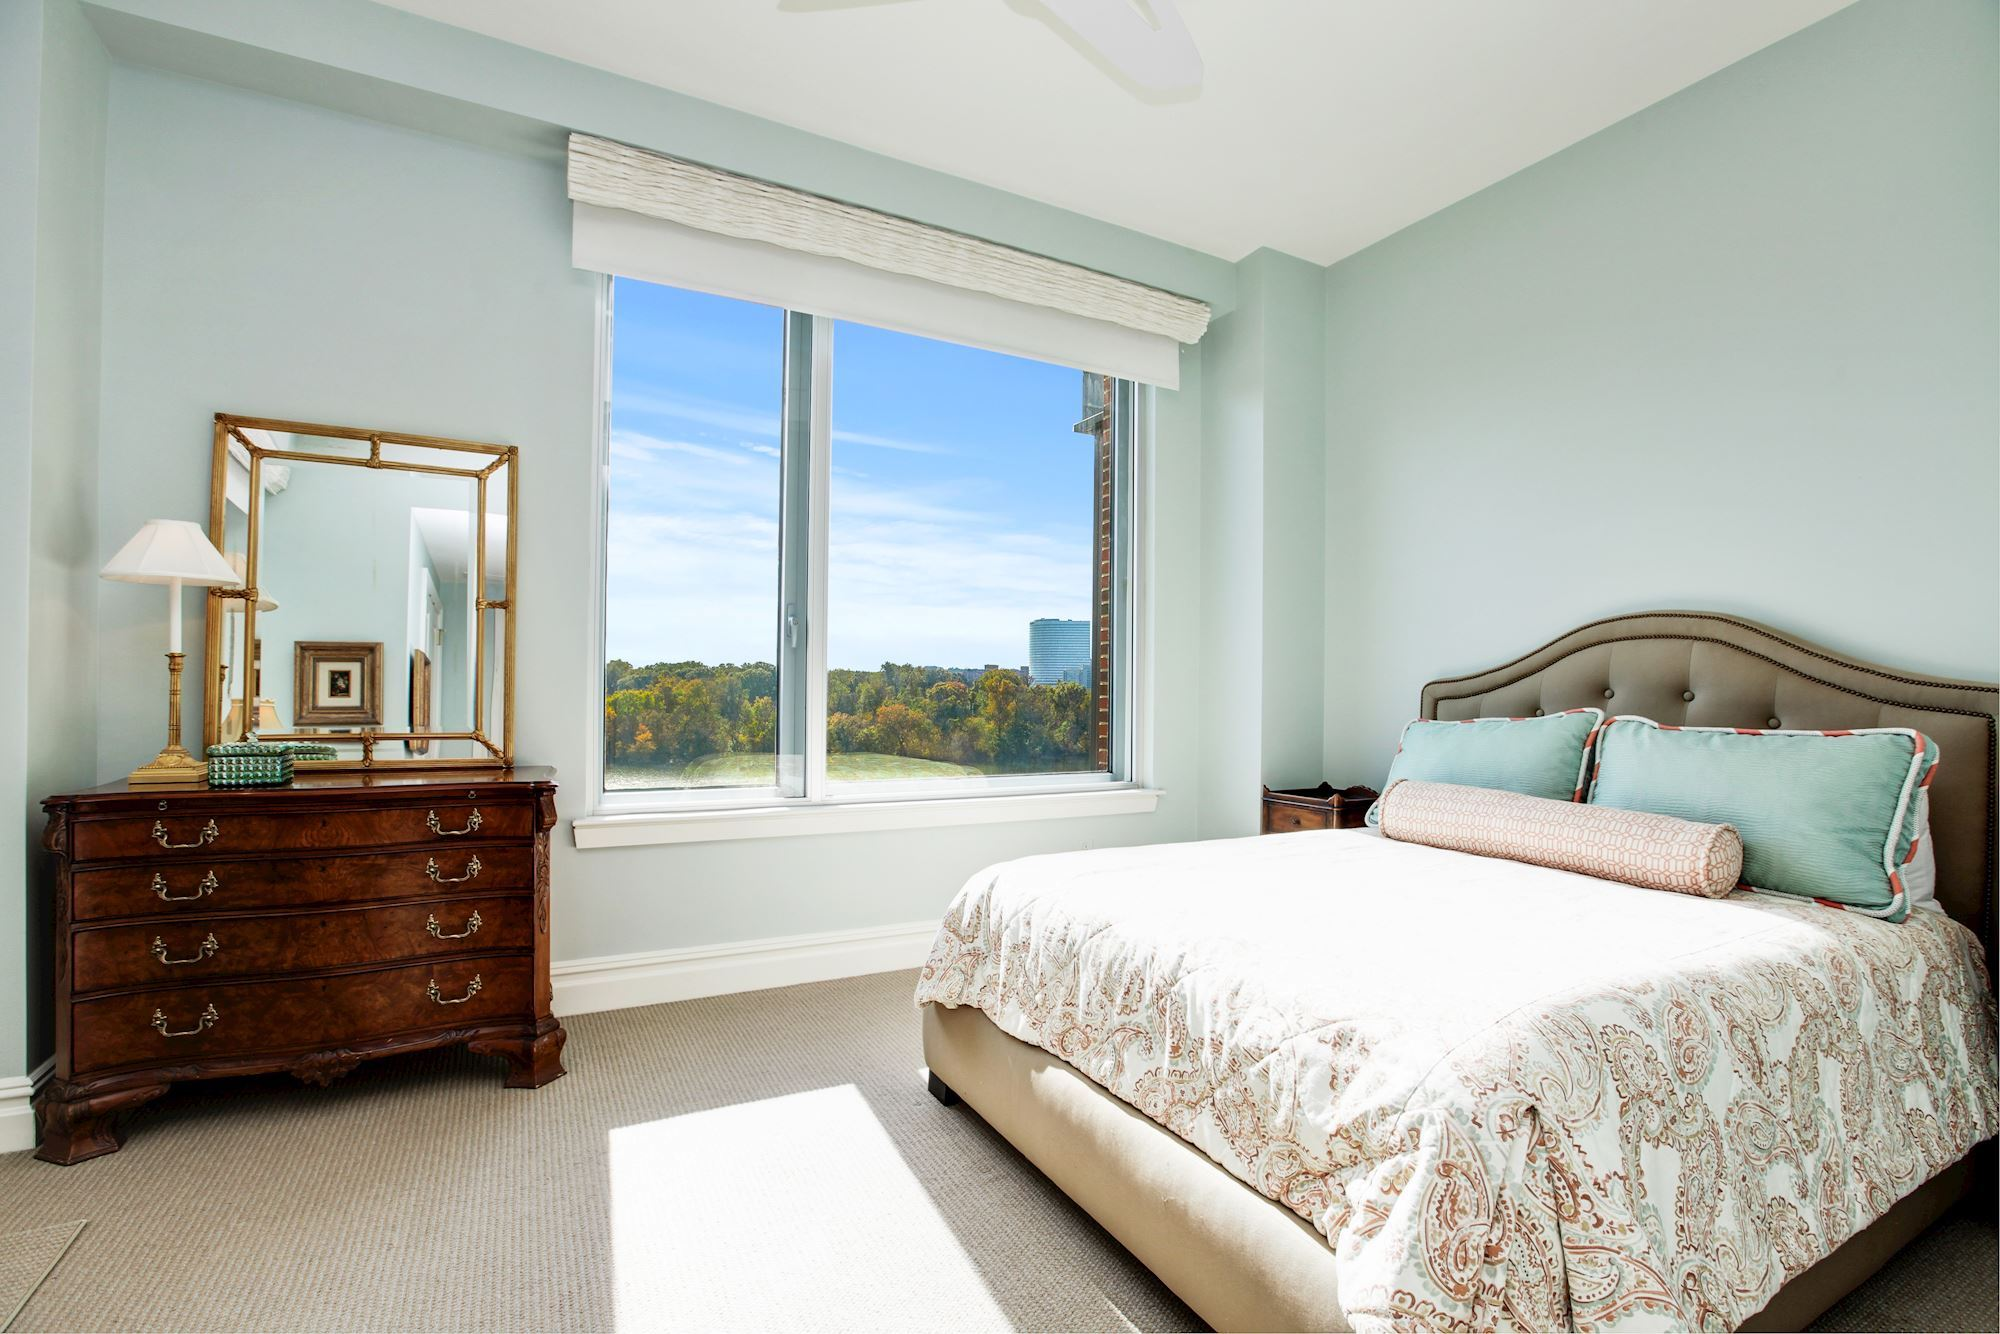 Bedroom Two offer Potomac River Views & Terrace Access